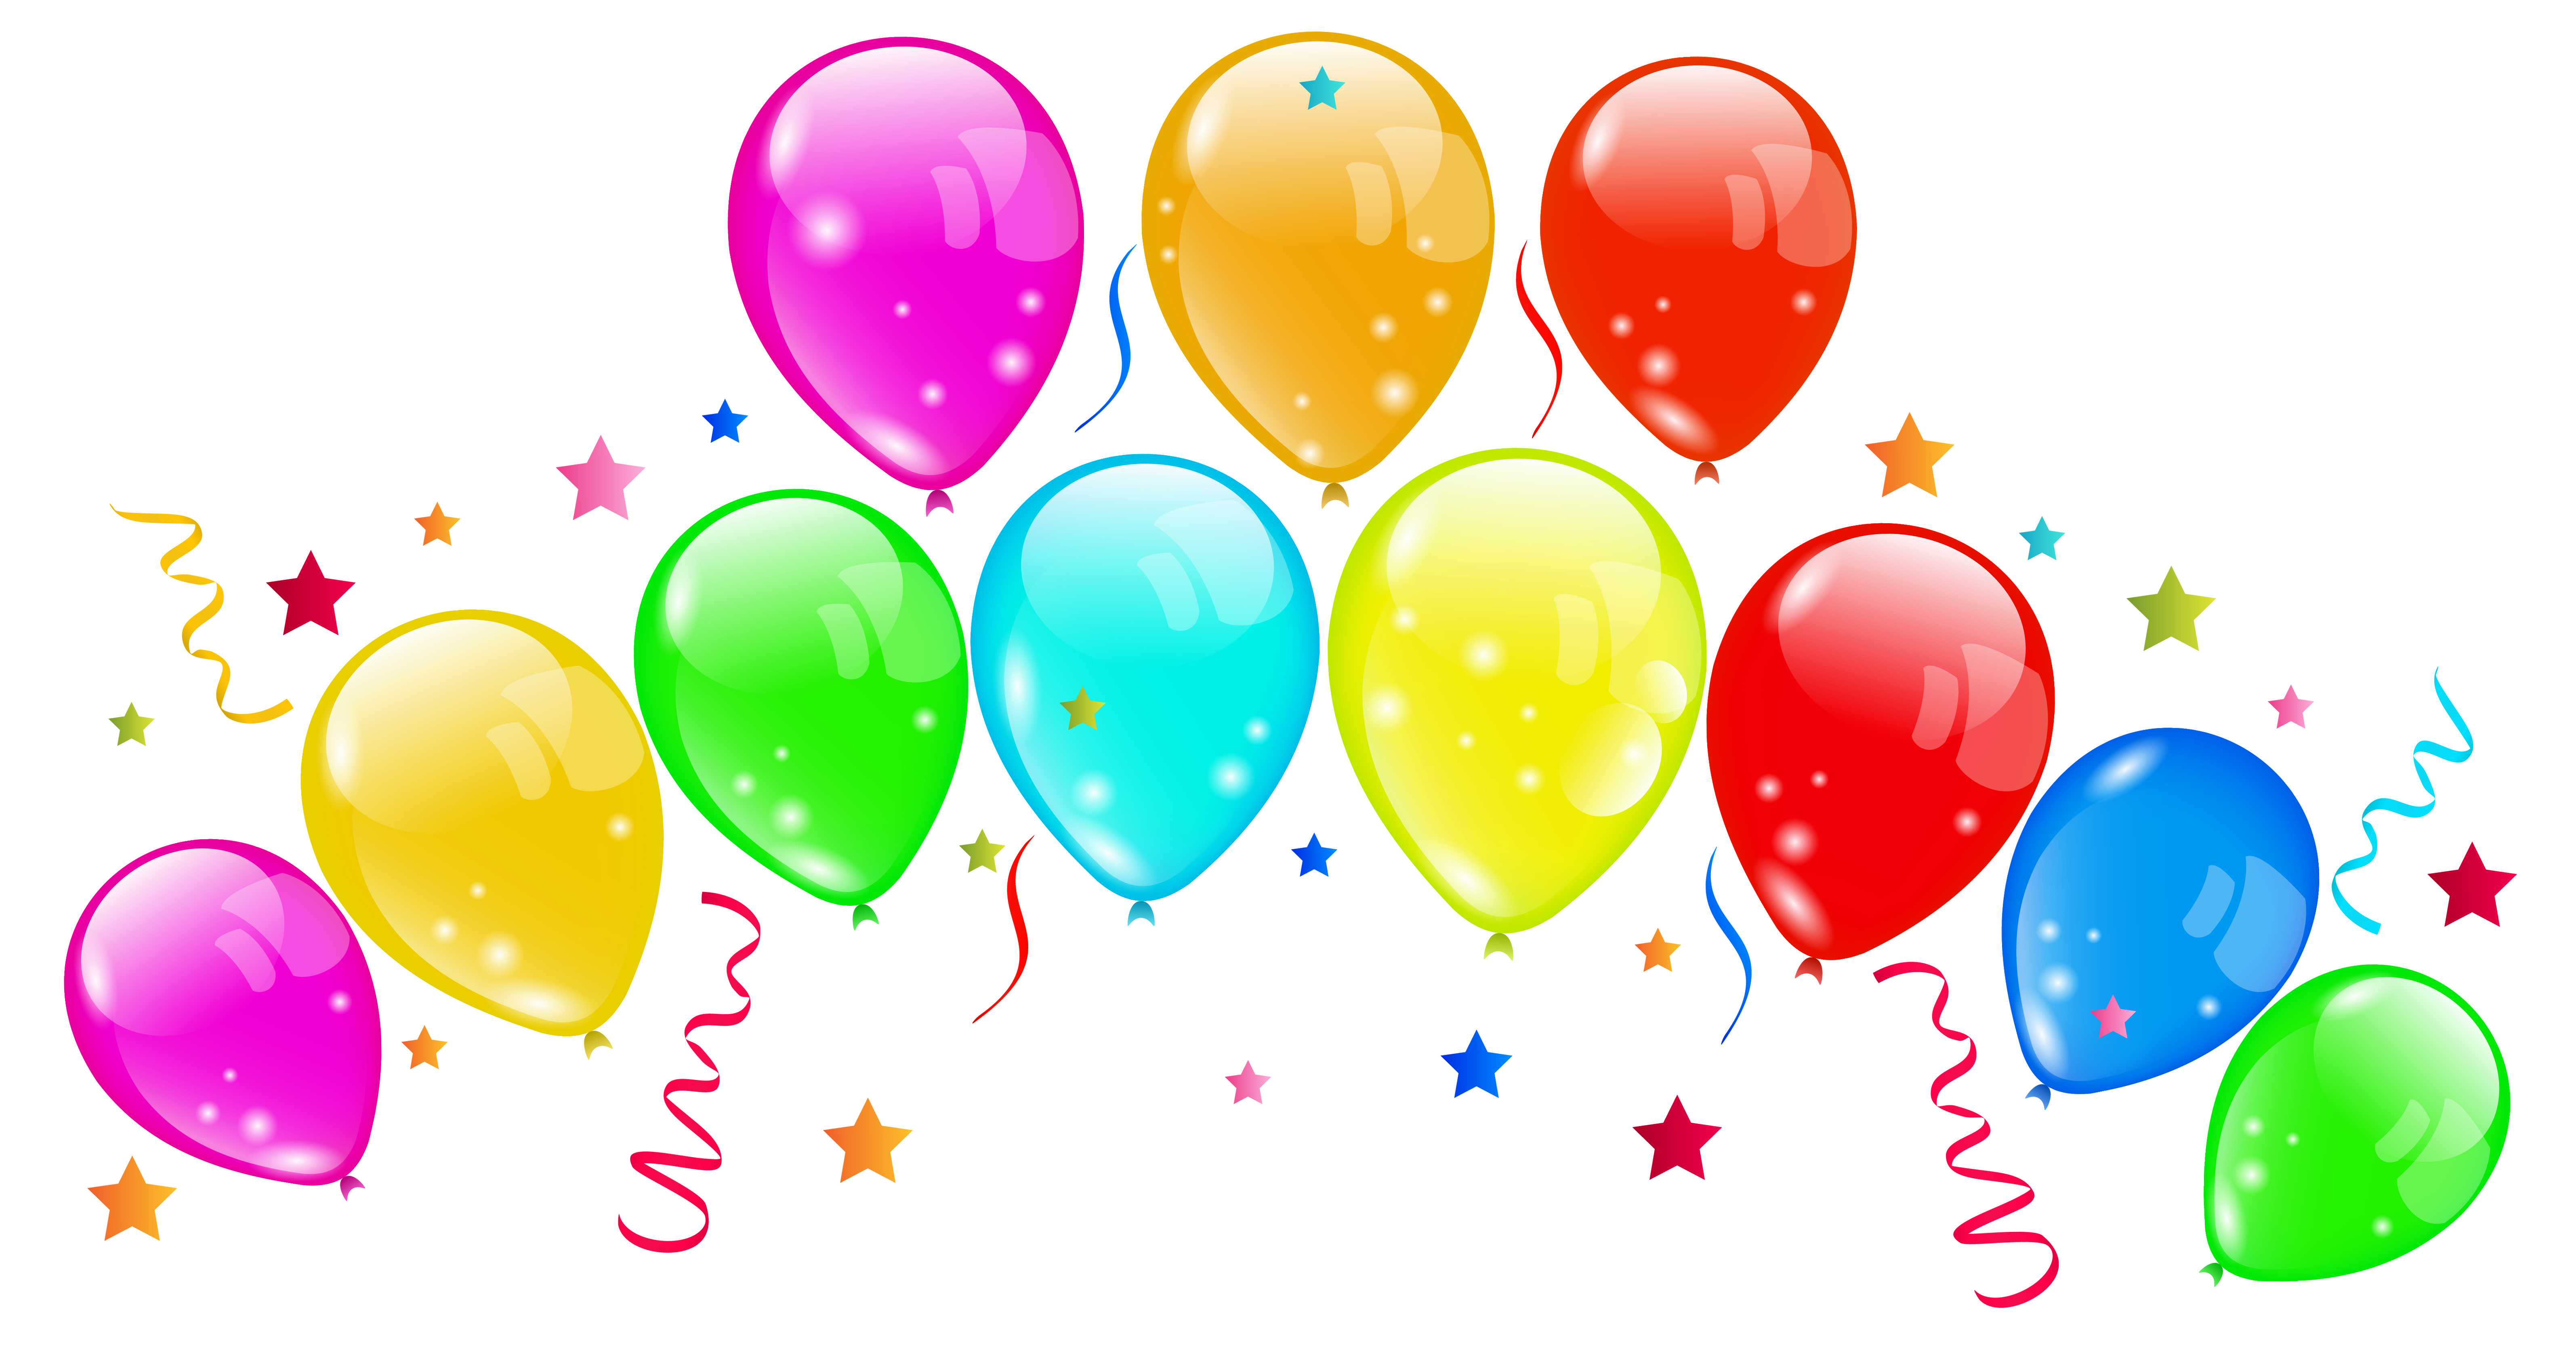 Clipart balloon spring. Decorative balloons png image